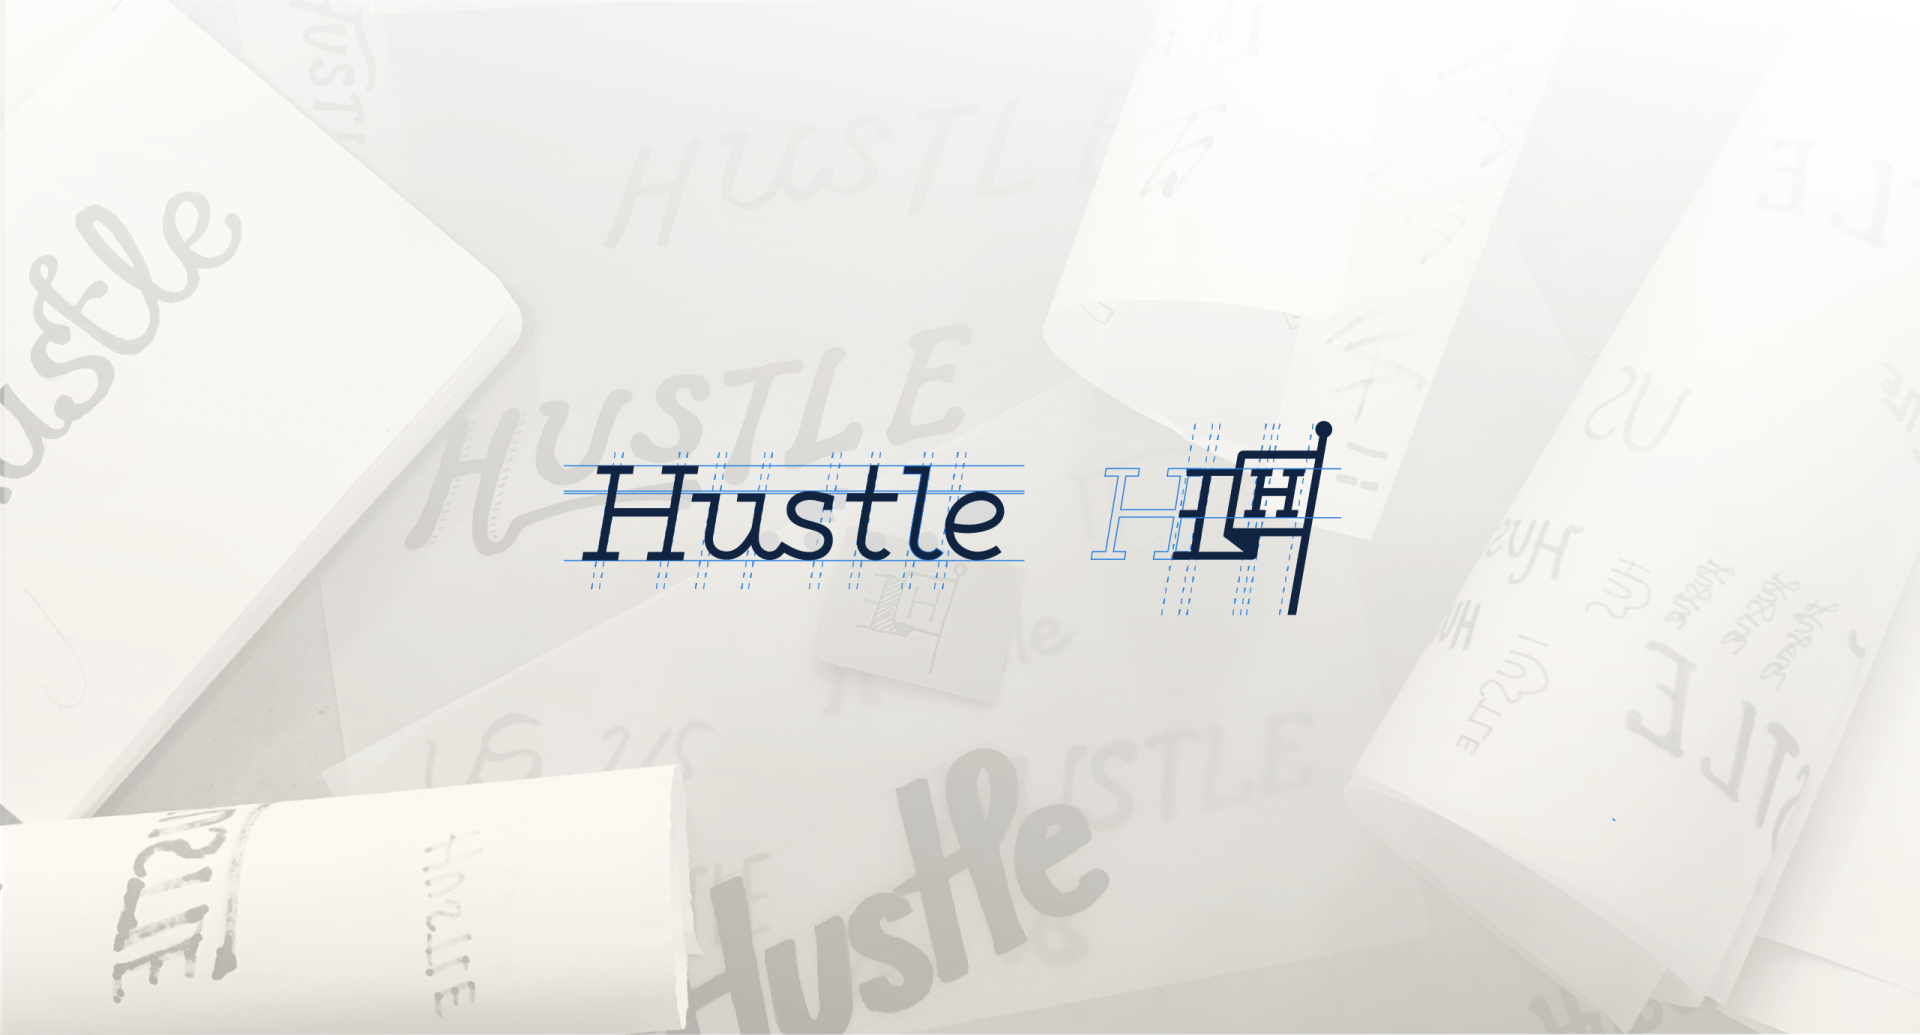 Hustle_TOP-logo-and-mark-2